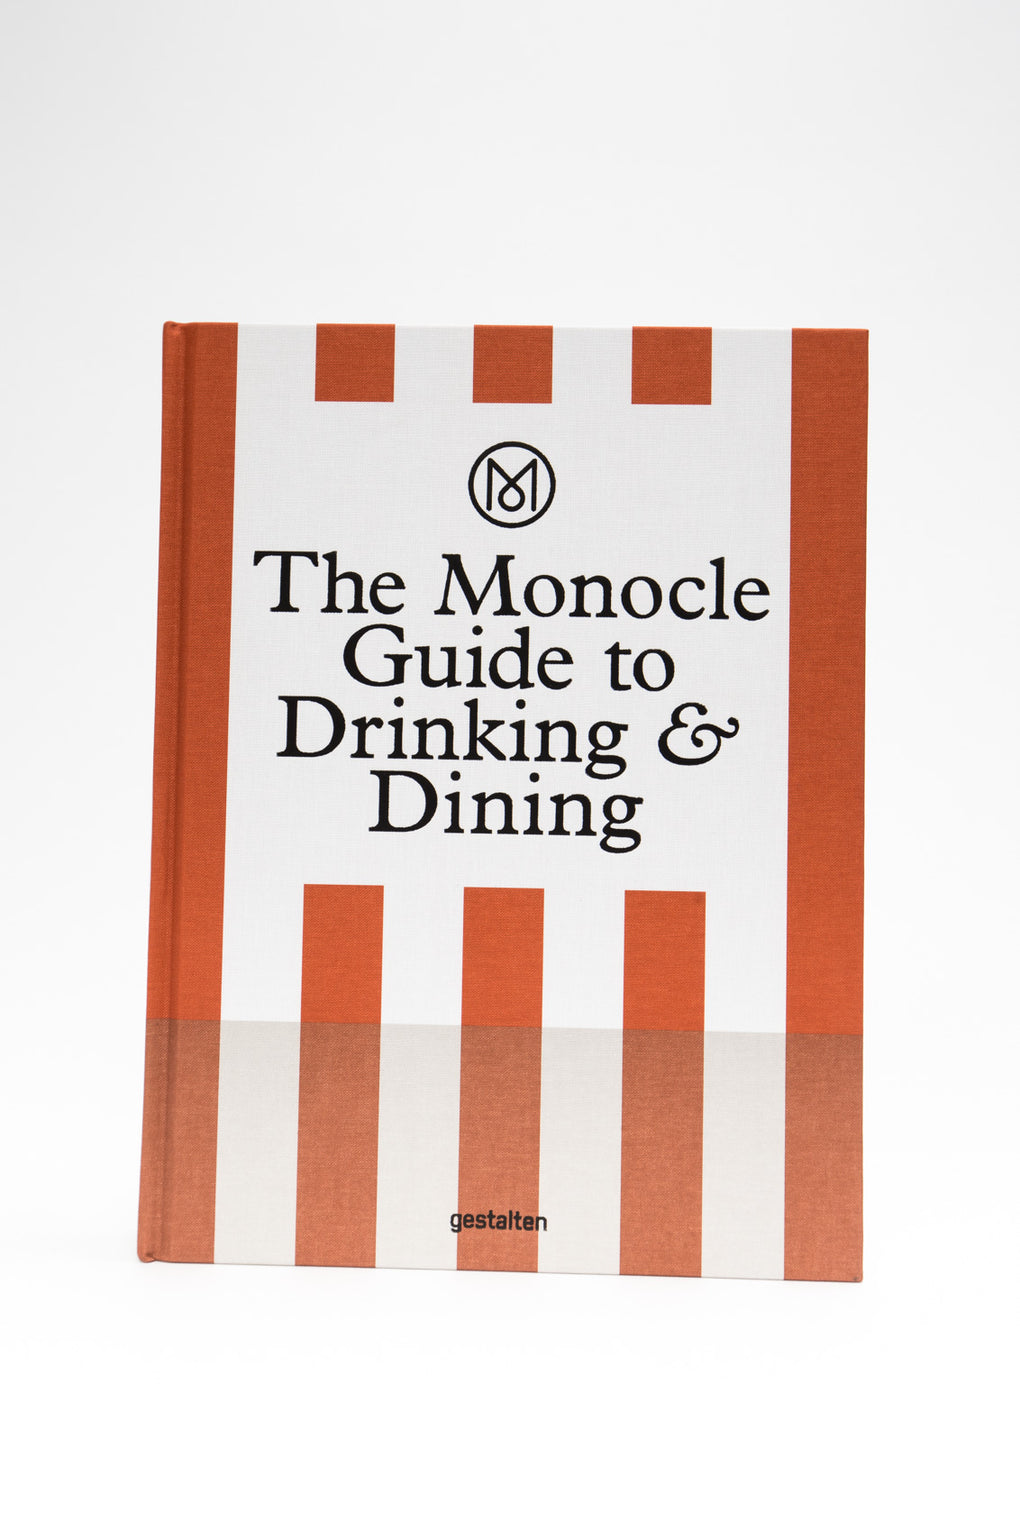 Monocle Guide to Drinking and Dining-monocle book-guidebook-citybook-idun-saint paul